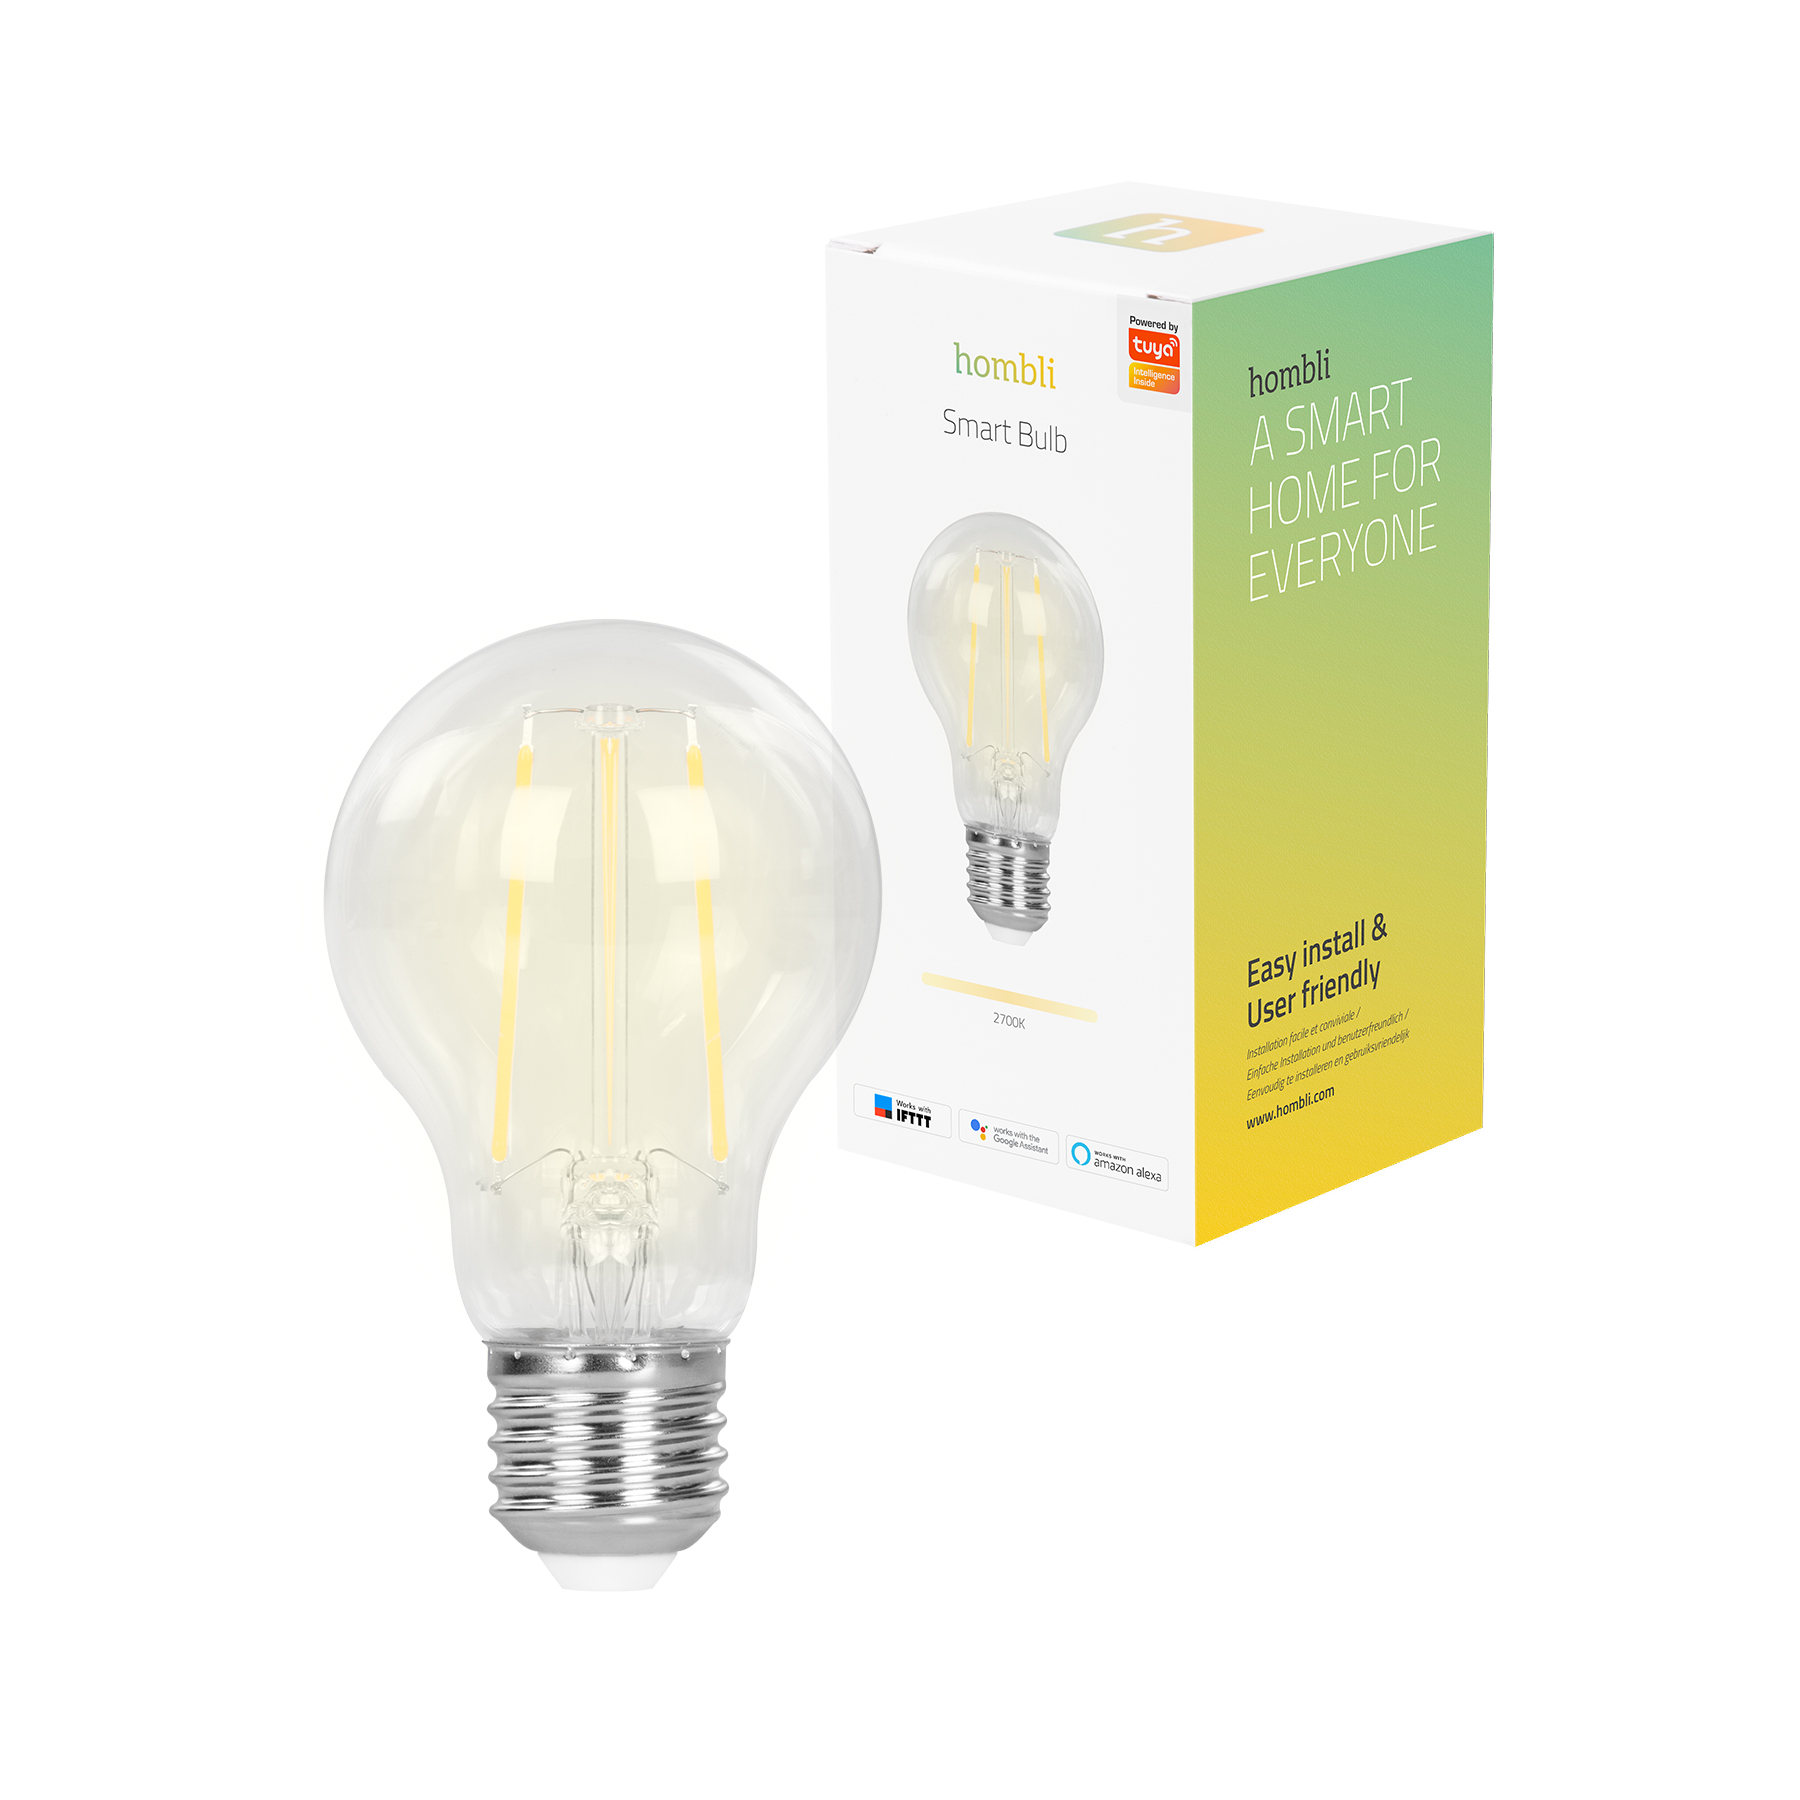 Hombli Smart Filament Bulb E27 Wifi